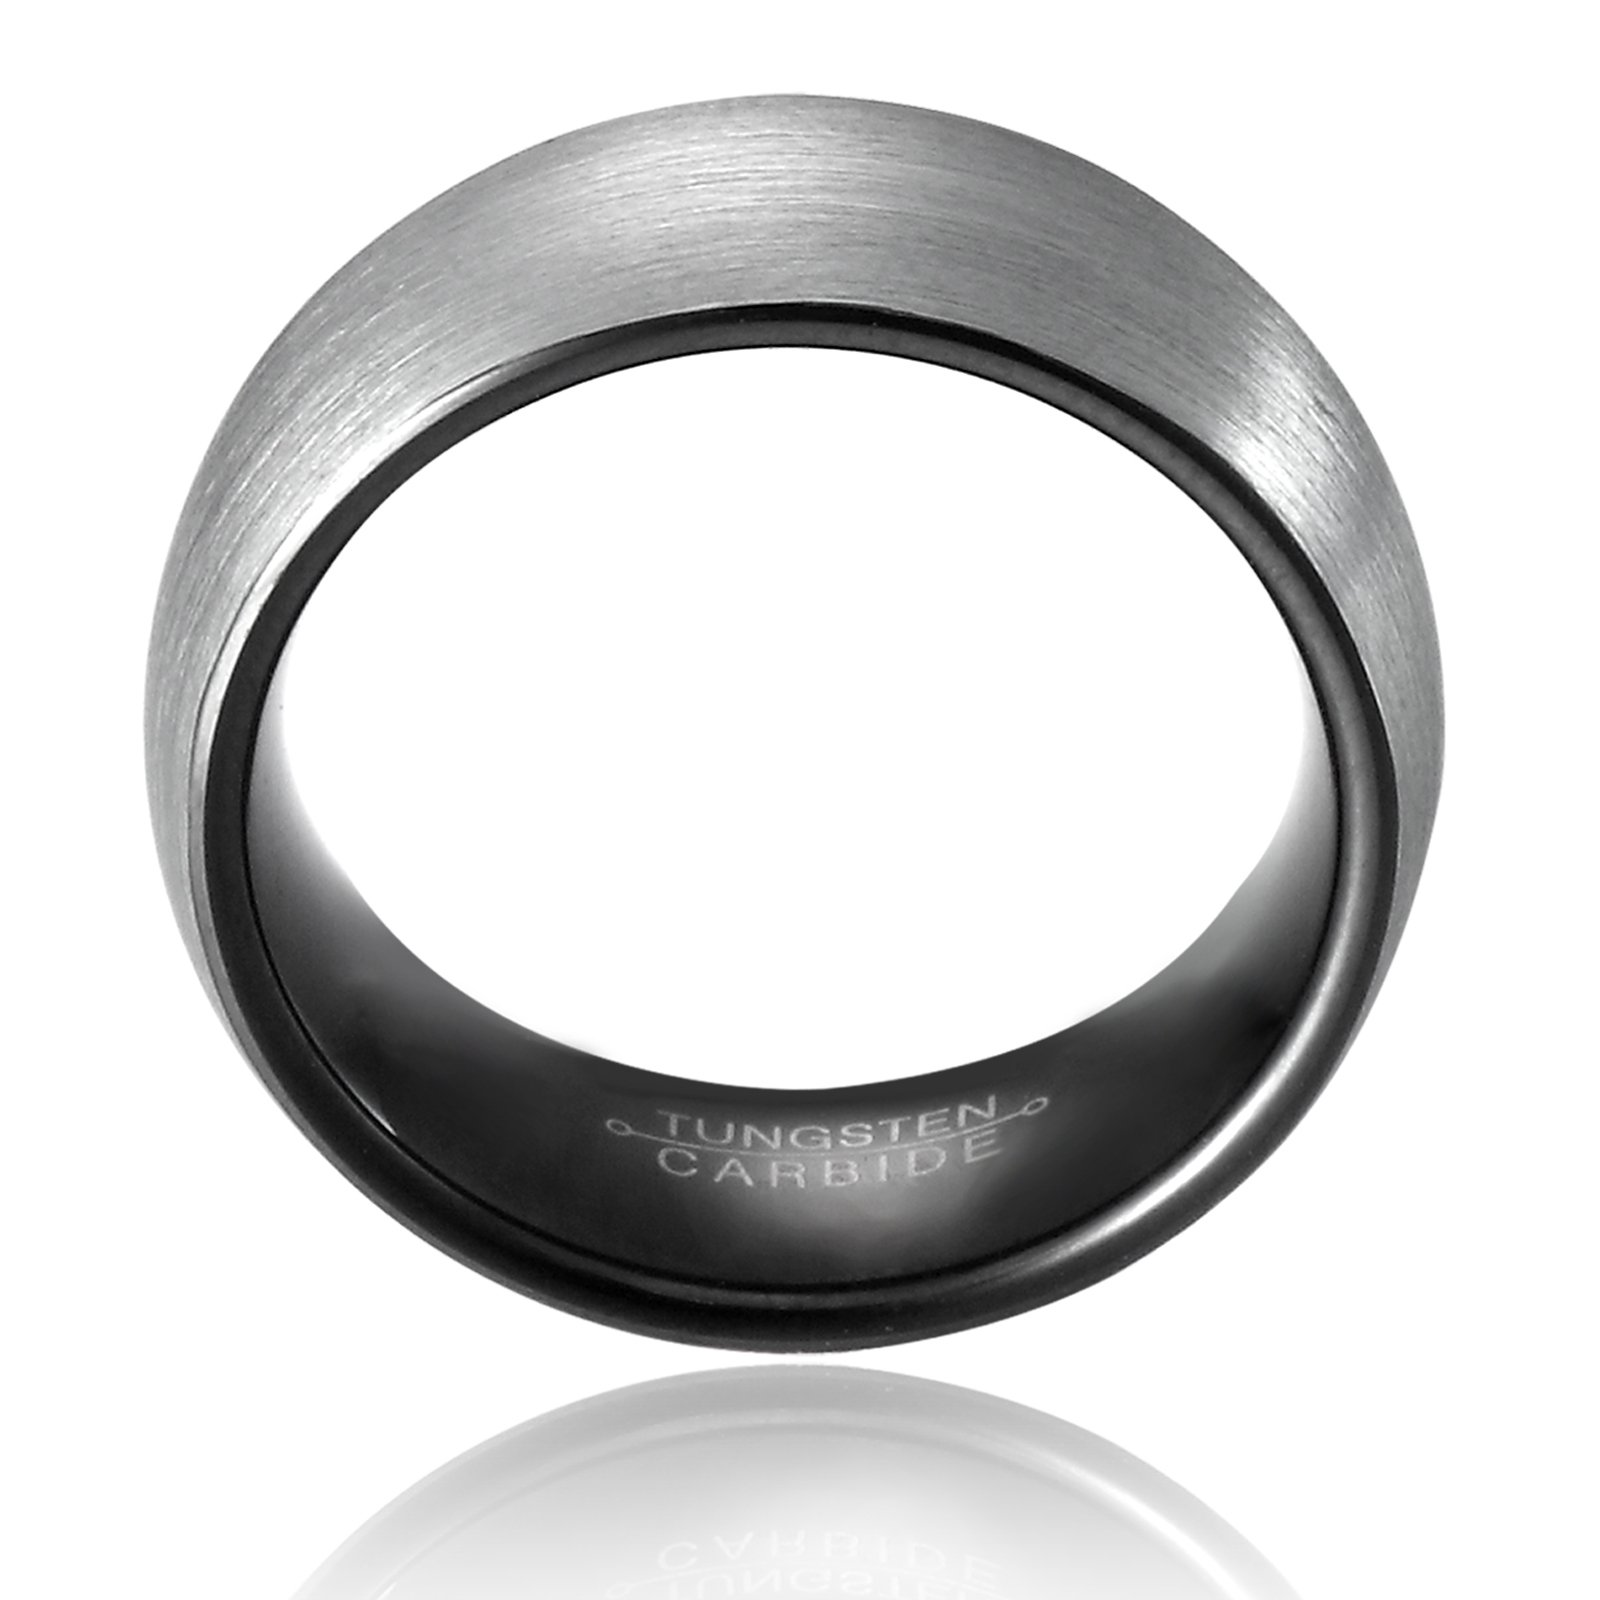 MNH Men's Carbide Tungsten Wedding Band Black 8mm Comfort Fit Brushed Matte Finish Ring Size 9.5 by MNH (Image #2)